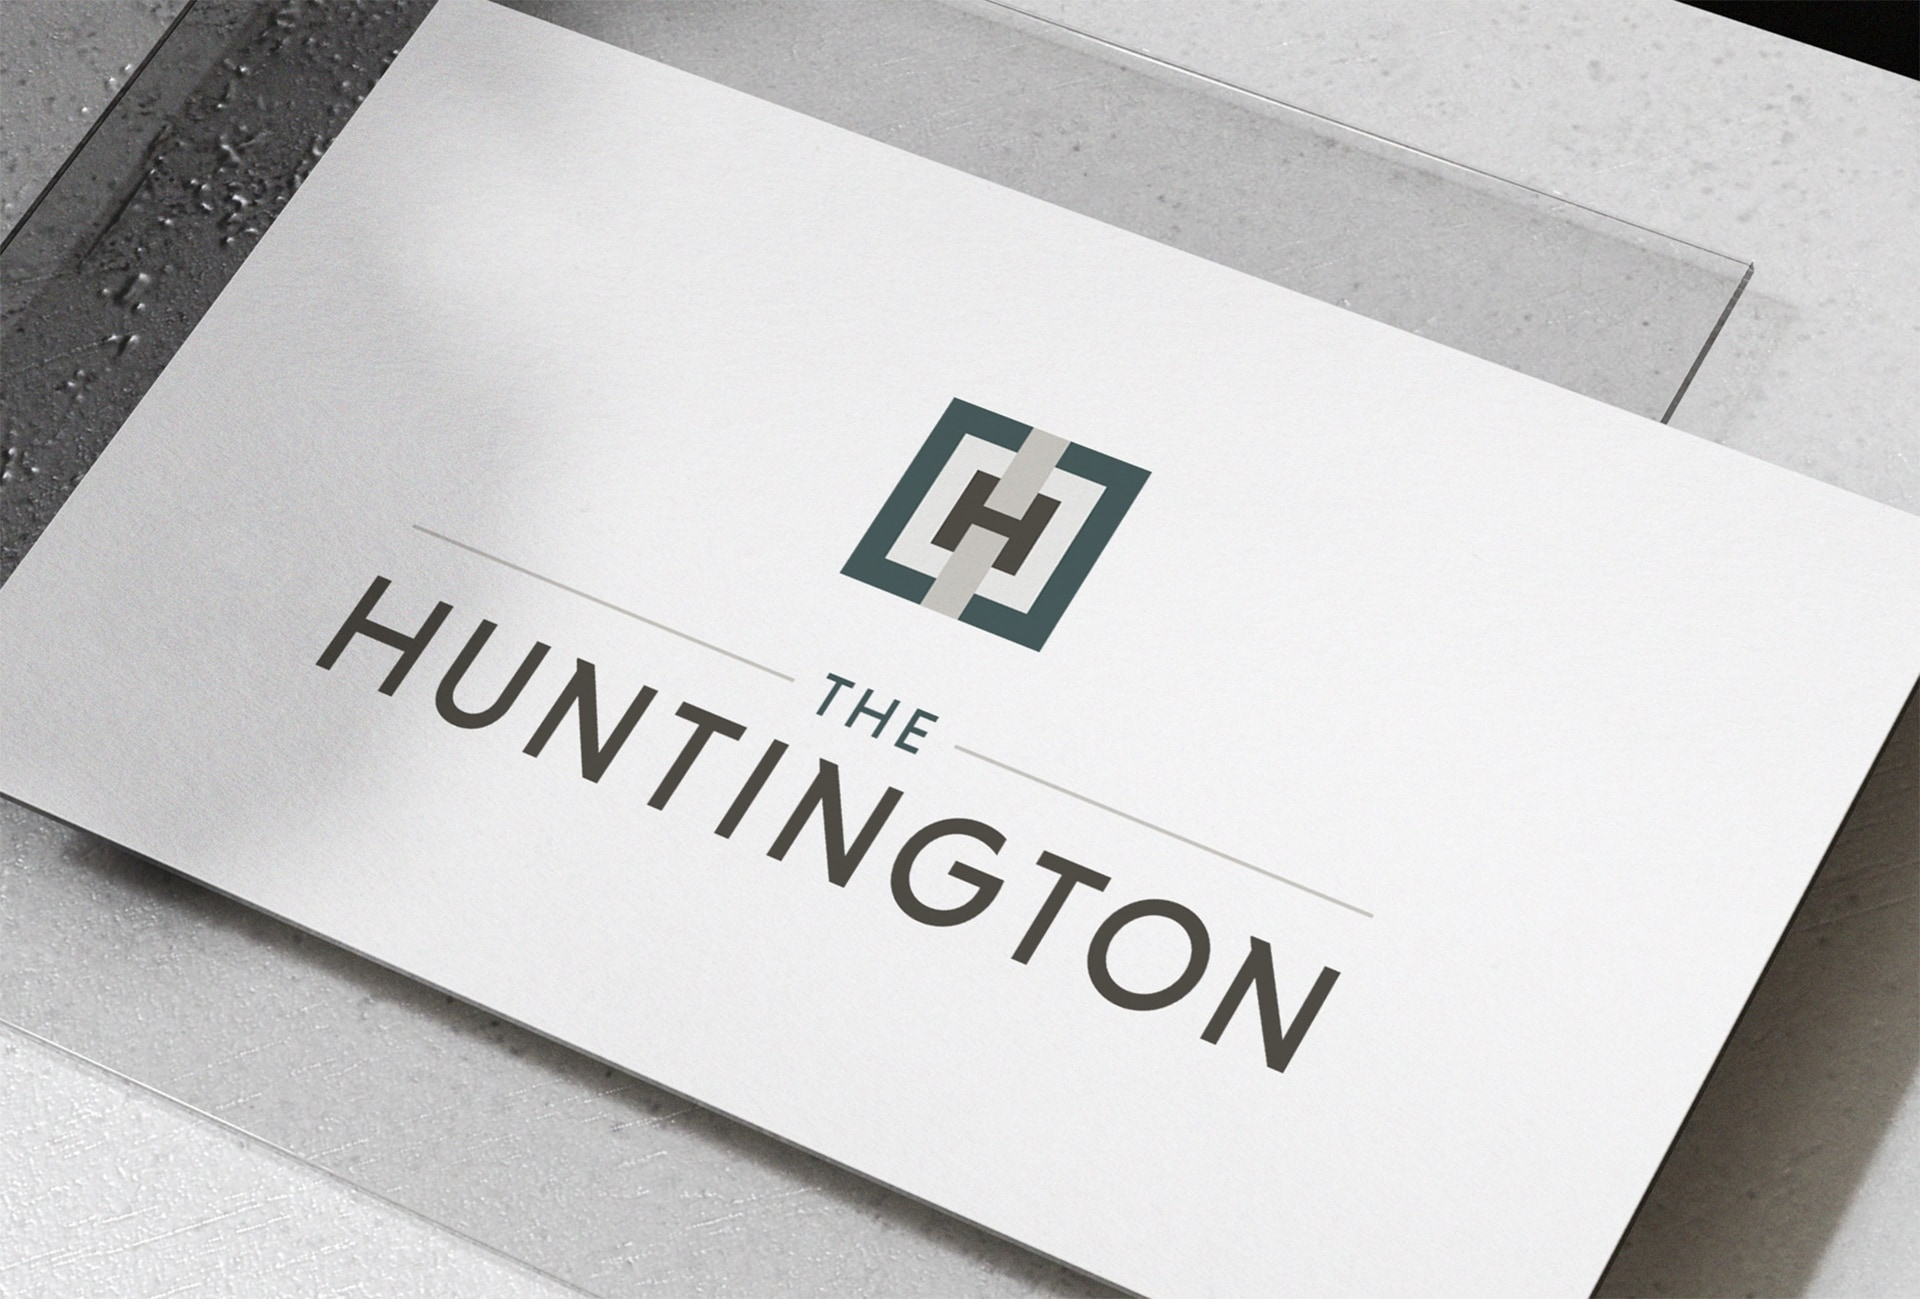 The Huntington color palette and type treatment convey the modern, opulent lifestyle the residential community is centered around.